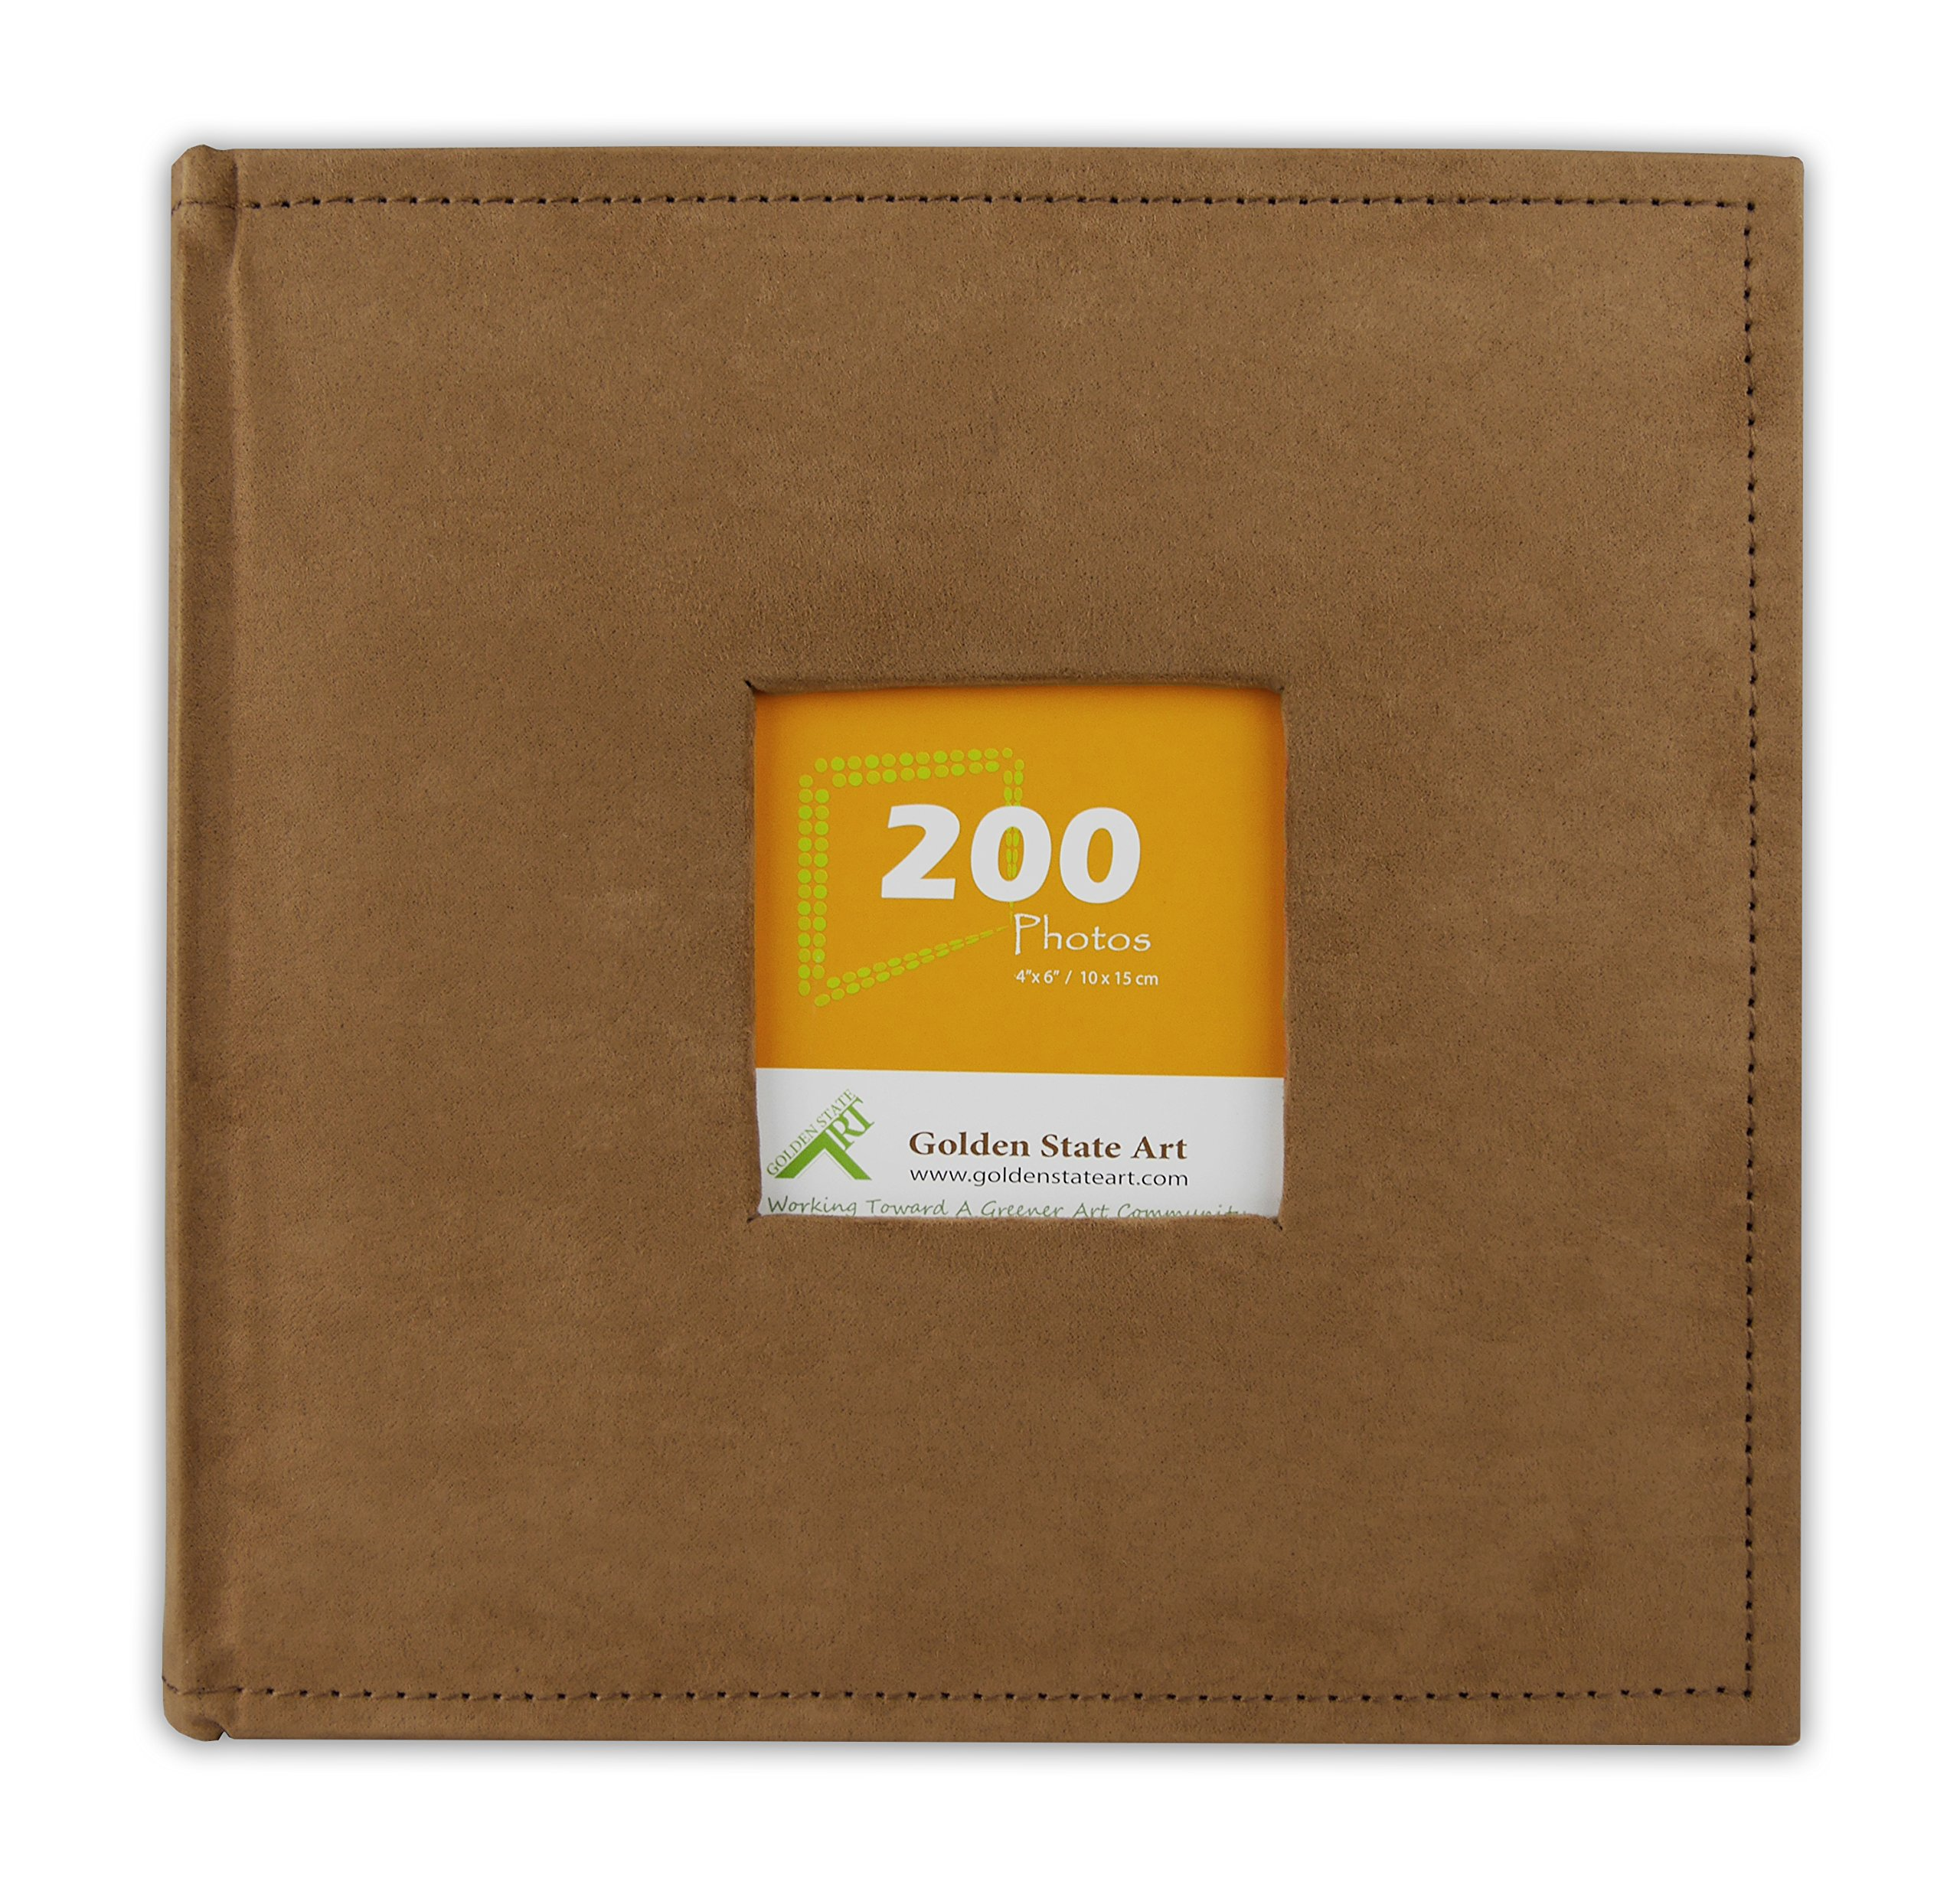 Golden State Art Photo Album, Holds 200 4''x6'' pictures, 2 per page, Suede Cover, Rusty Bronze